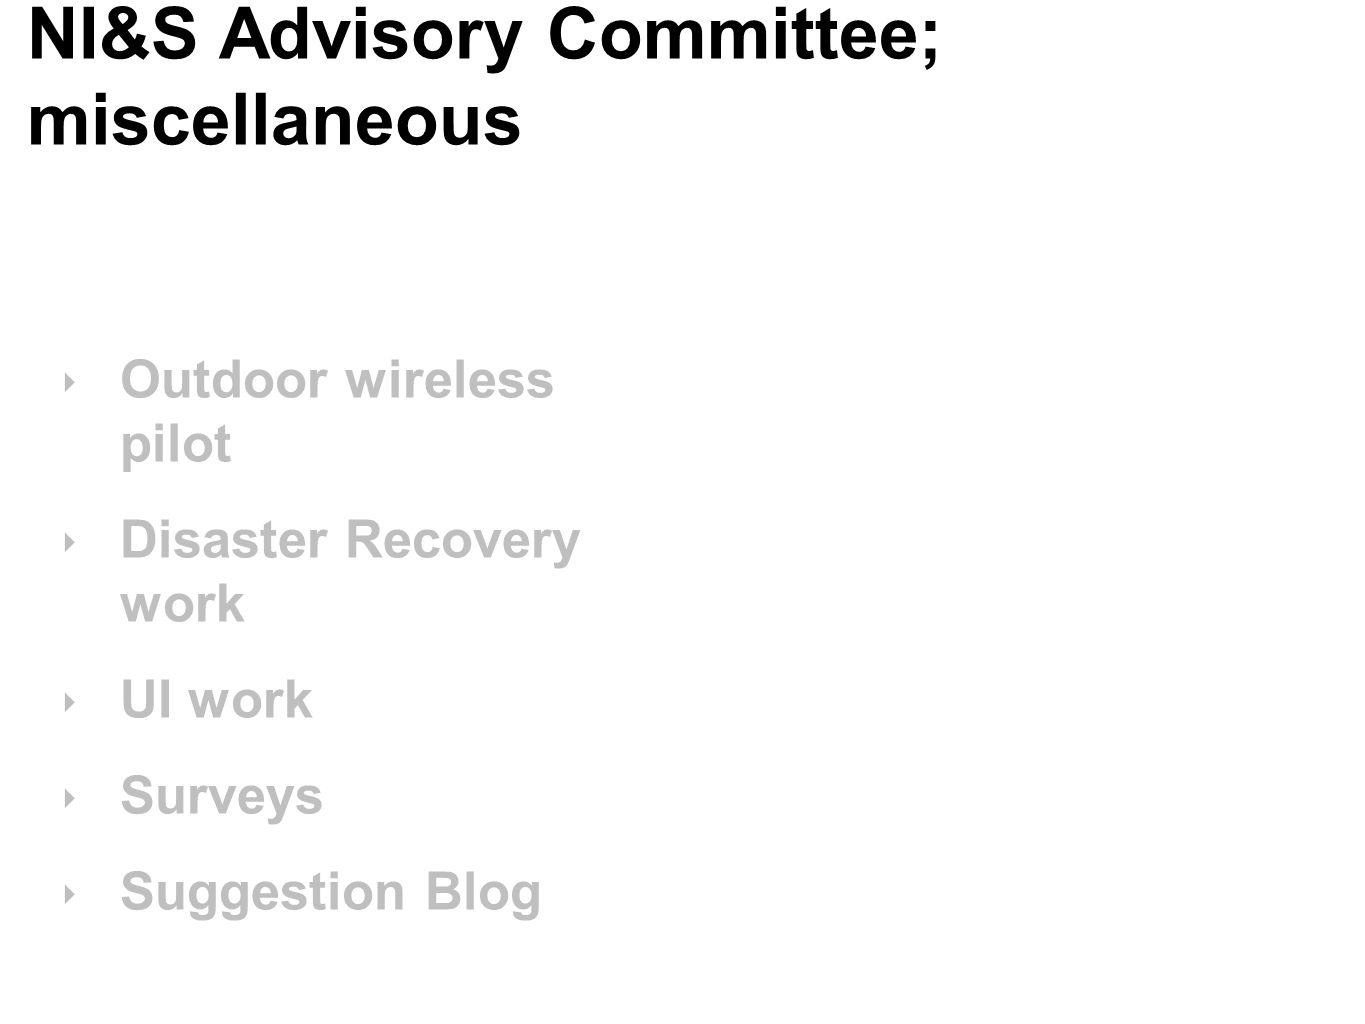 NI&S Advisory Committee; miscellaneous ‣ Outdoor wireless pilot ‣ Disaster Recovery work ‣ UI work ‣ Surveys ‣ Suggestion Blog